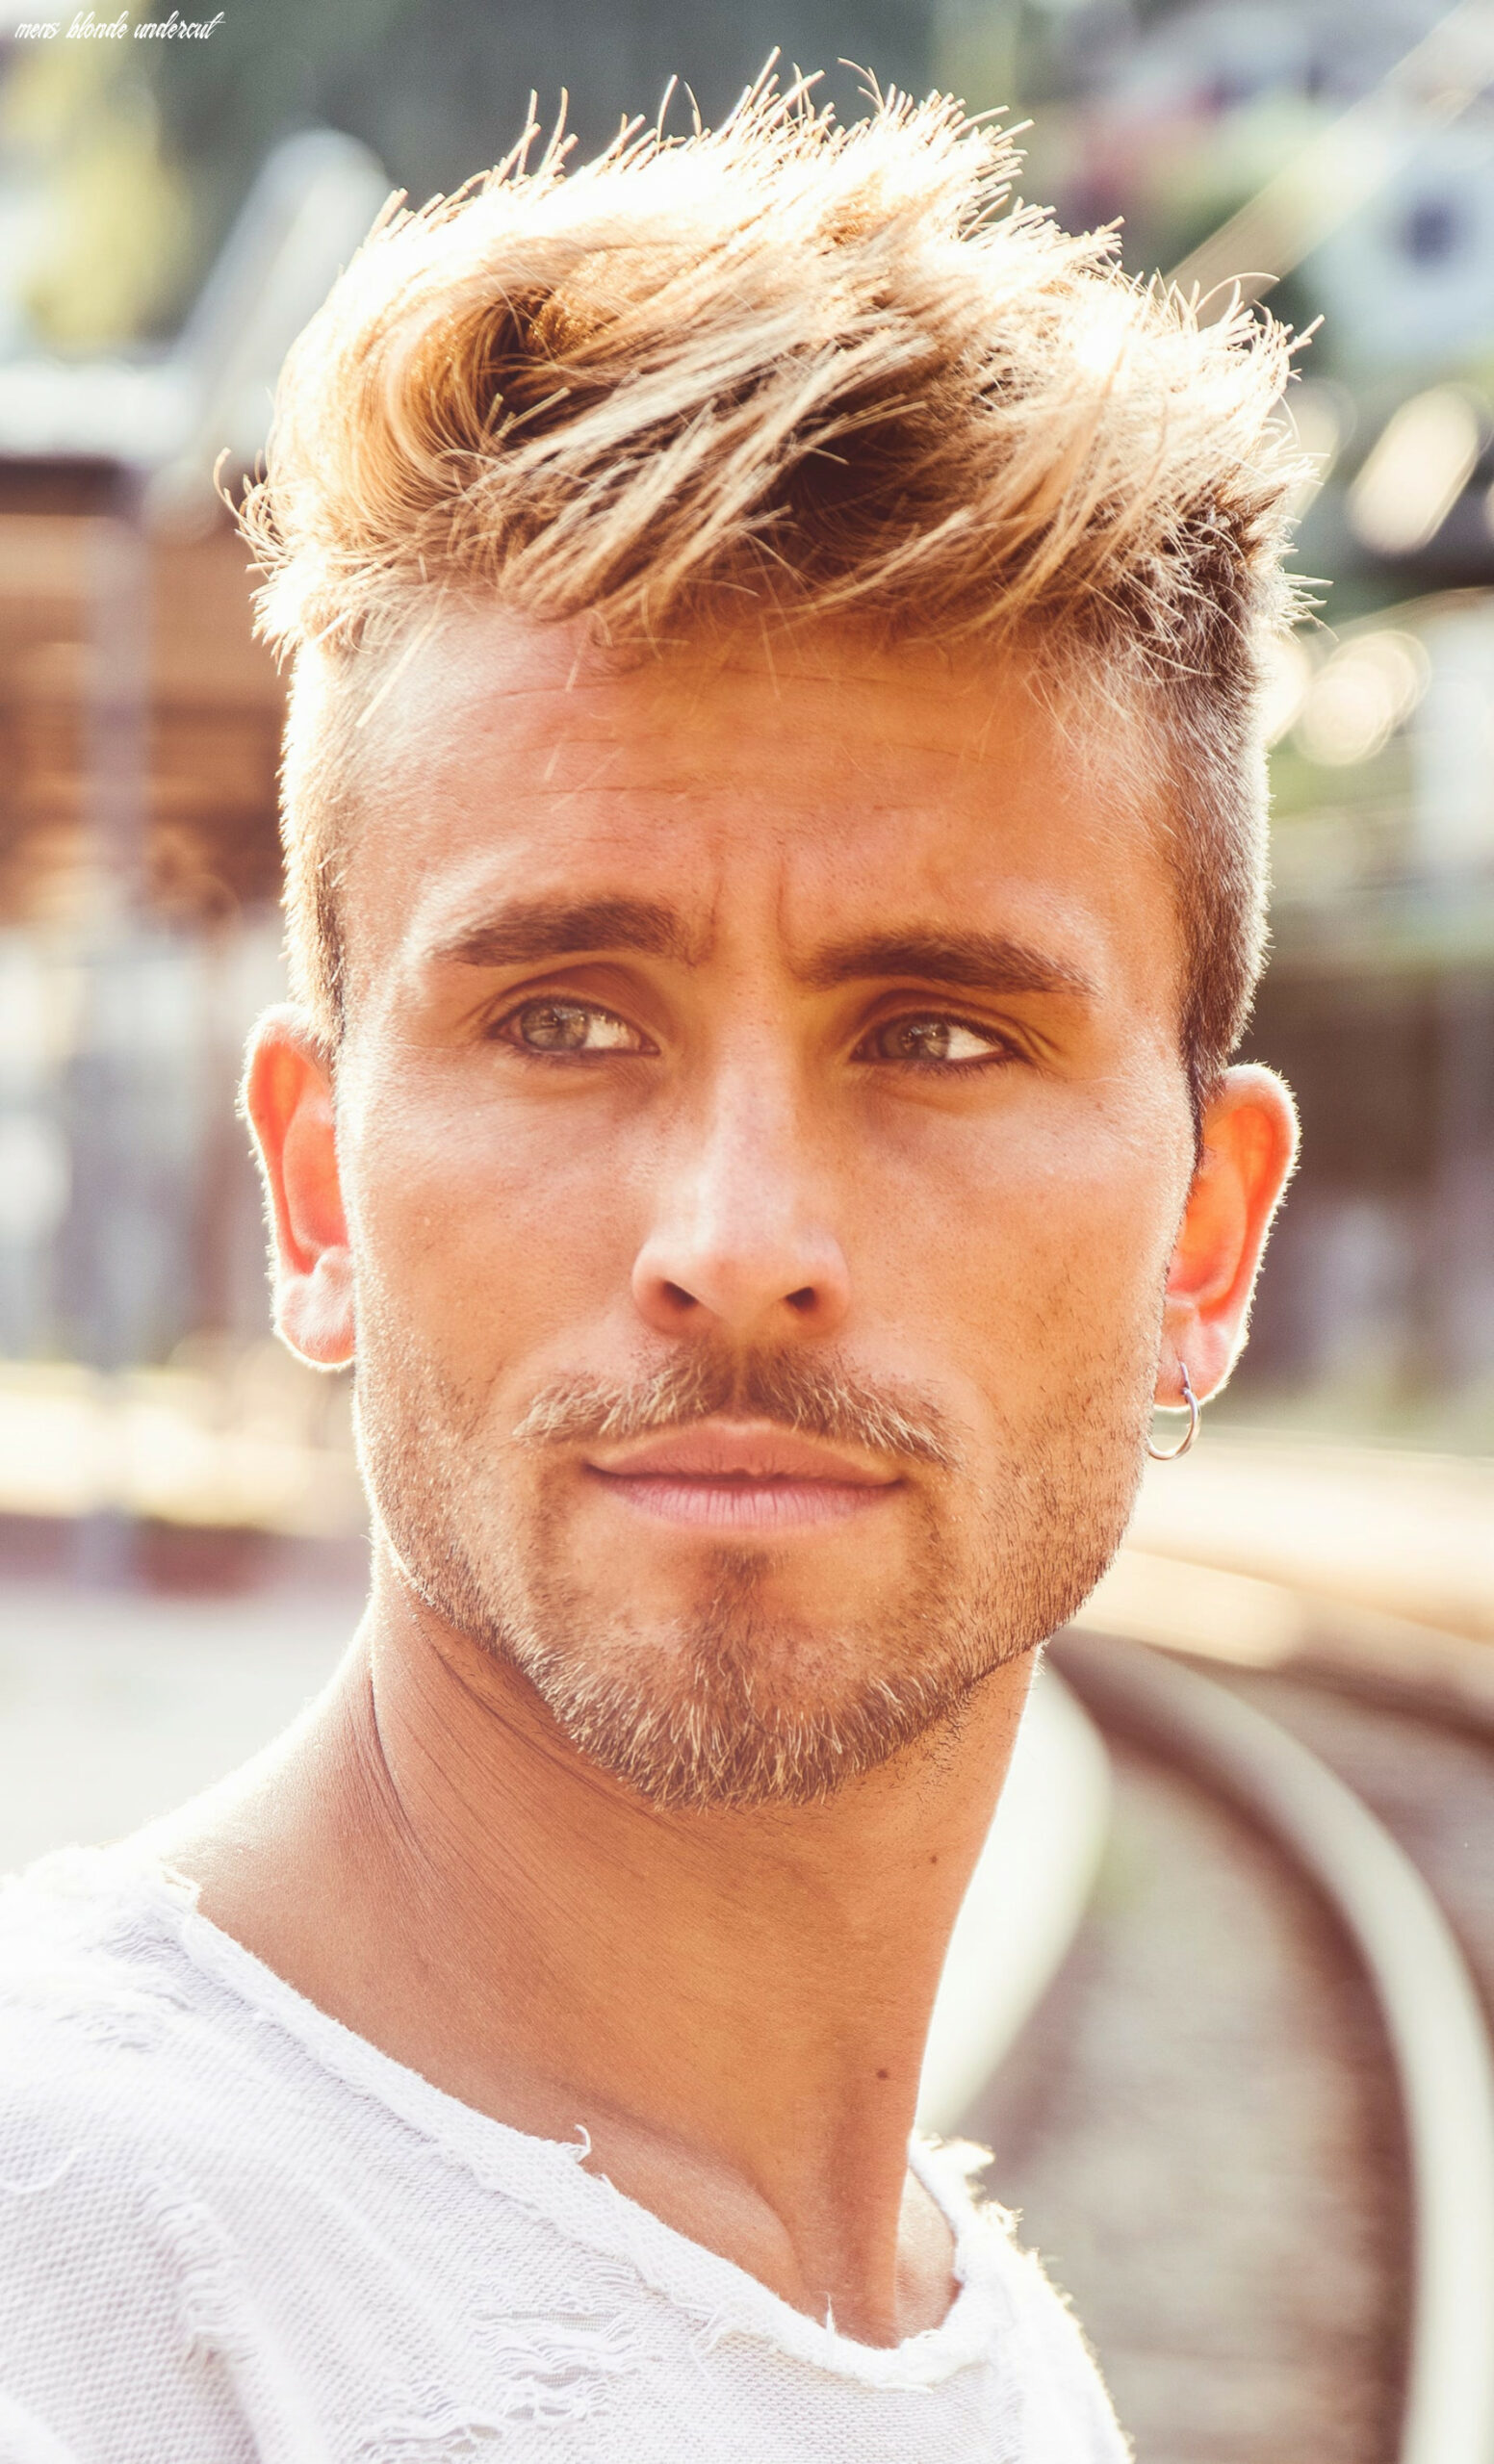 Best 11 blonde hairstyles for men to try in 11 mens blonde undercut